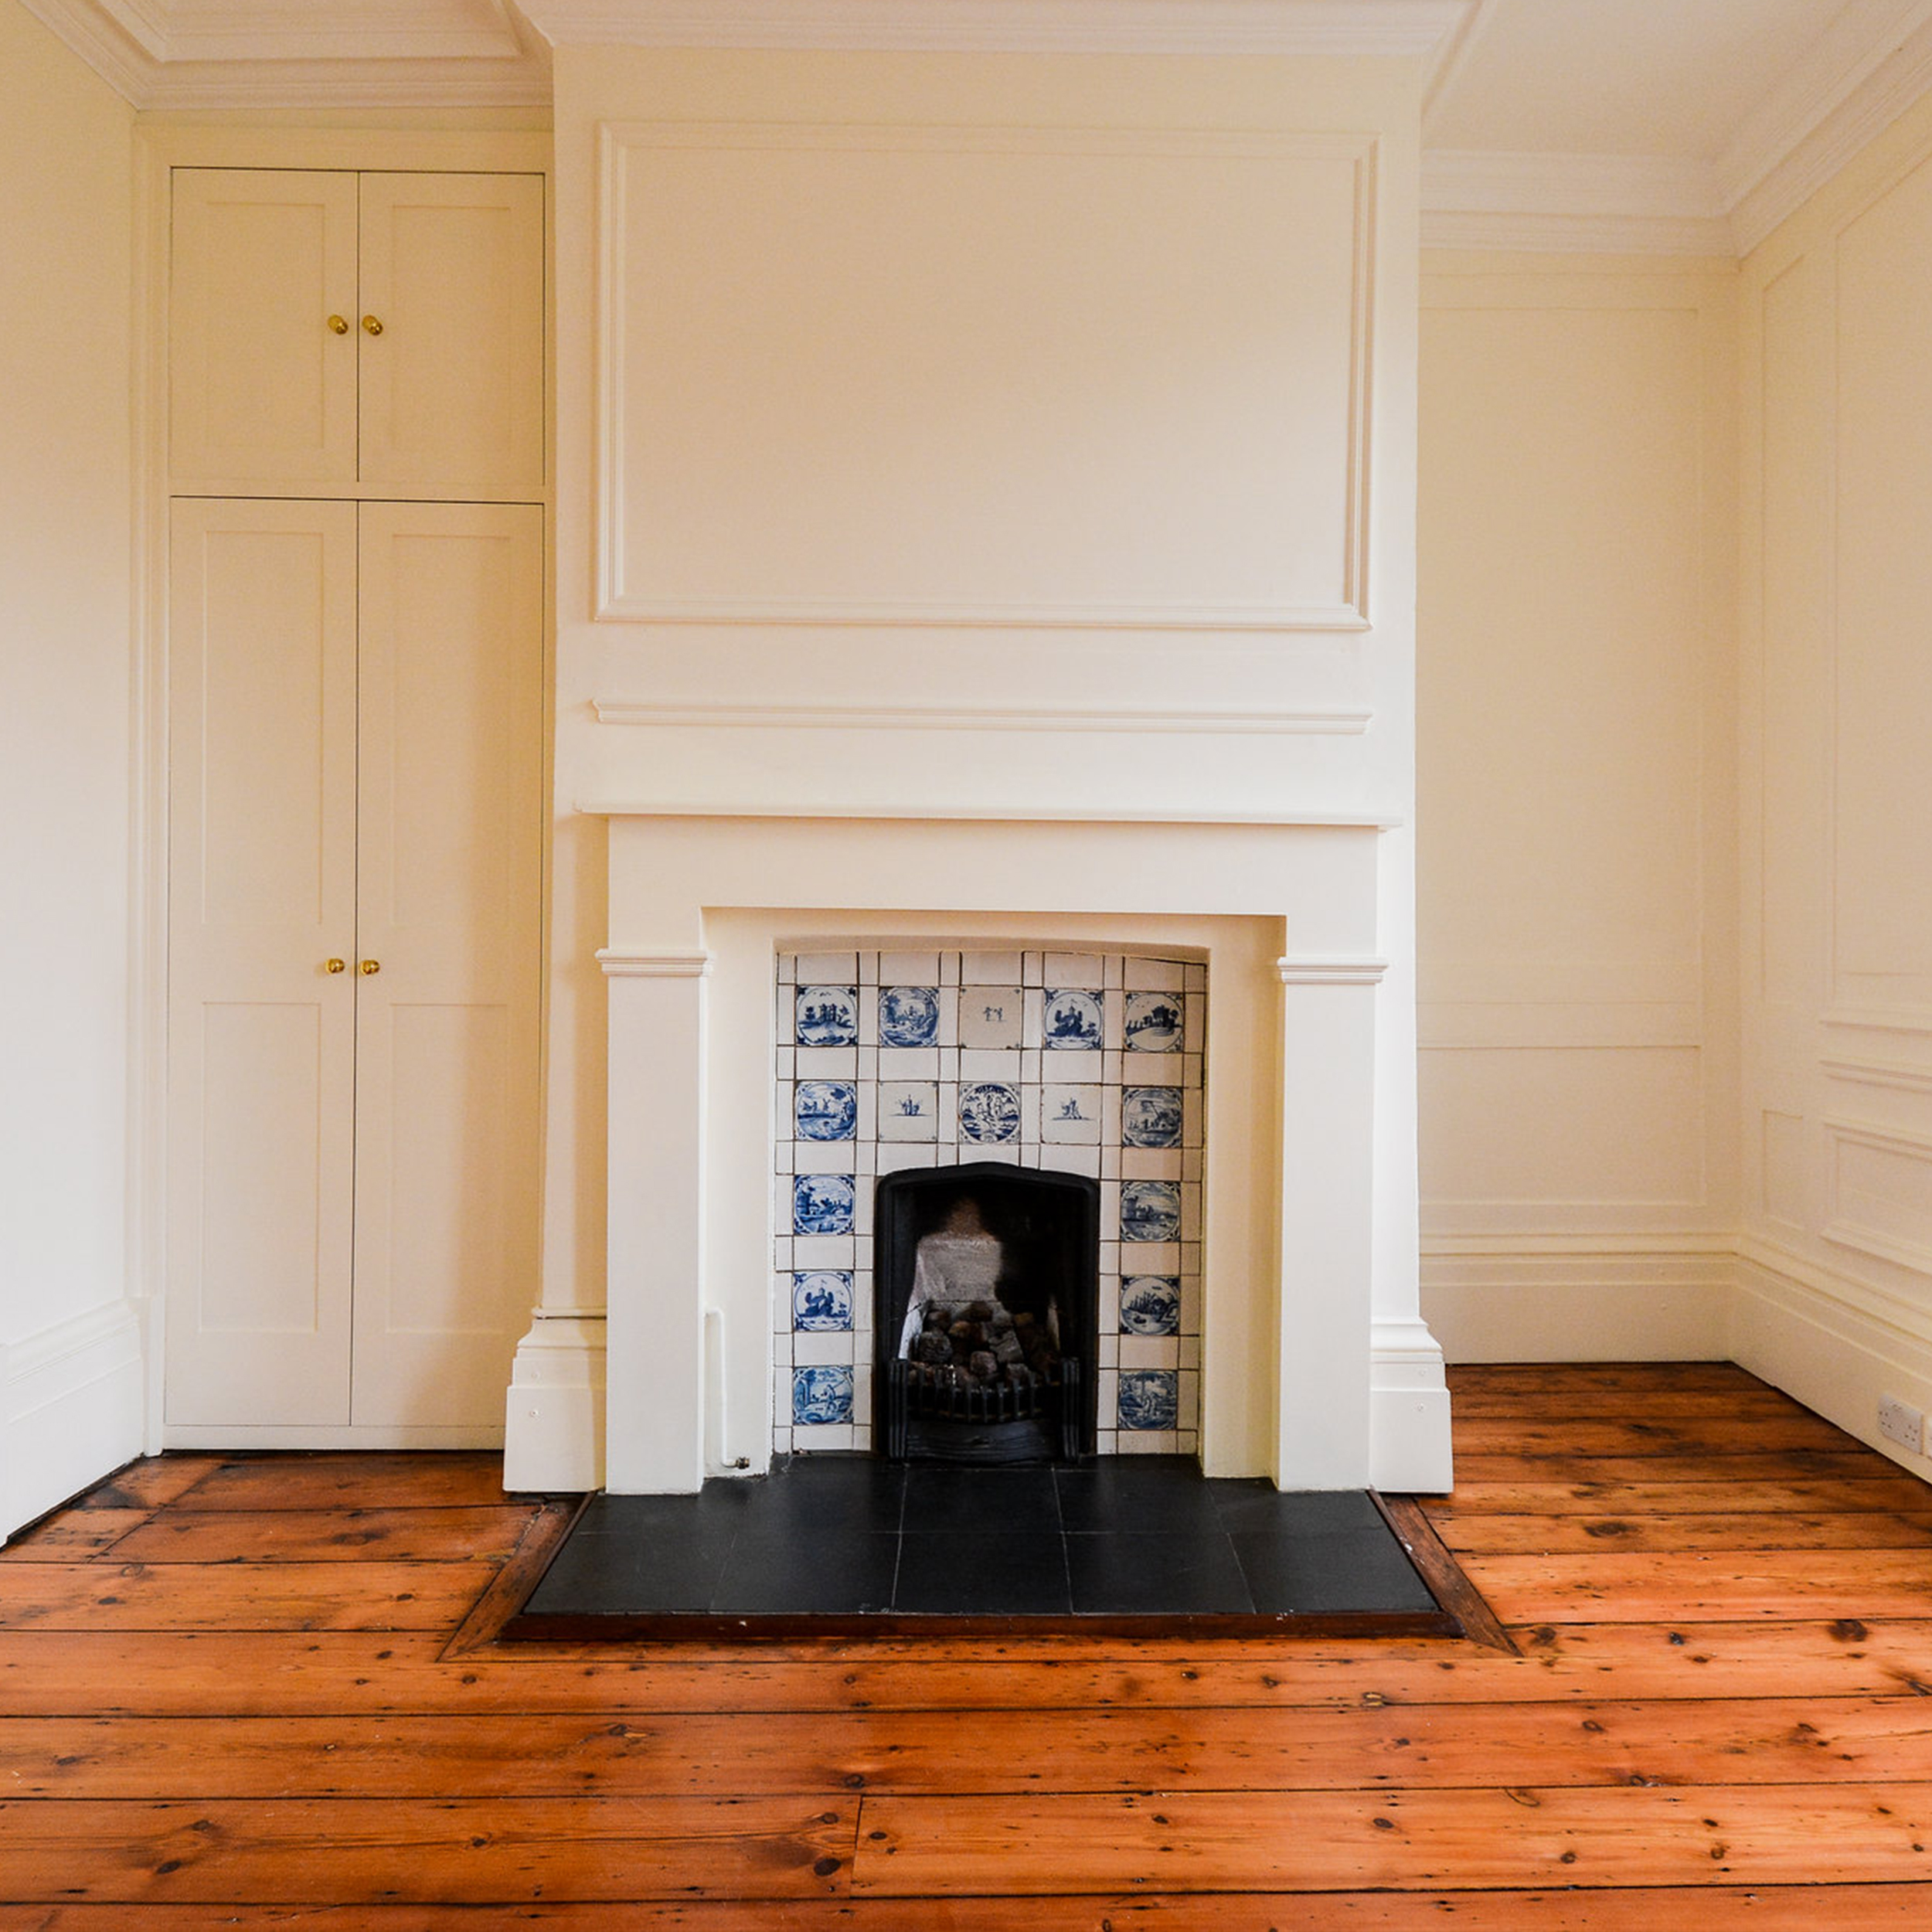 Void property with a large fireplace and wooden floorboards